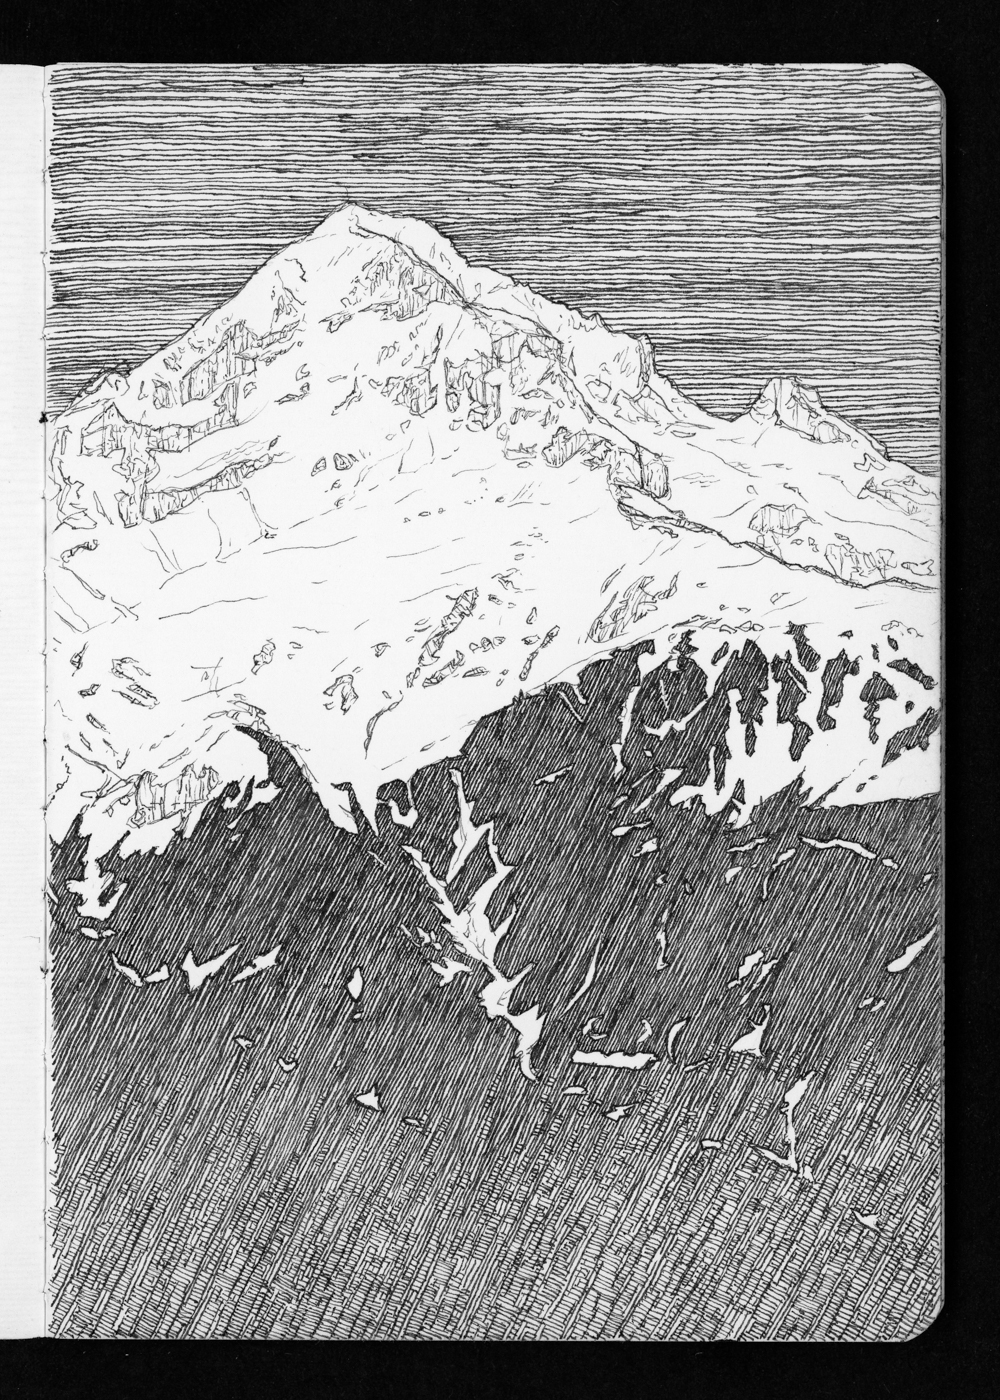 05-08 Mt Hood Over Muddy Fork Valley from Bald Mountain.jpg